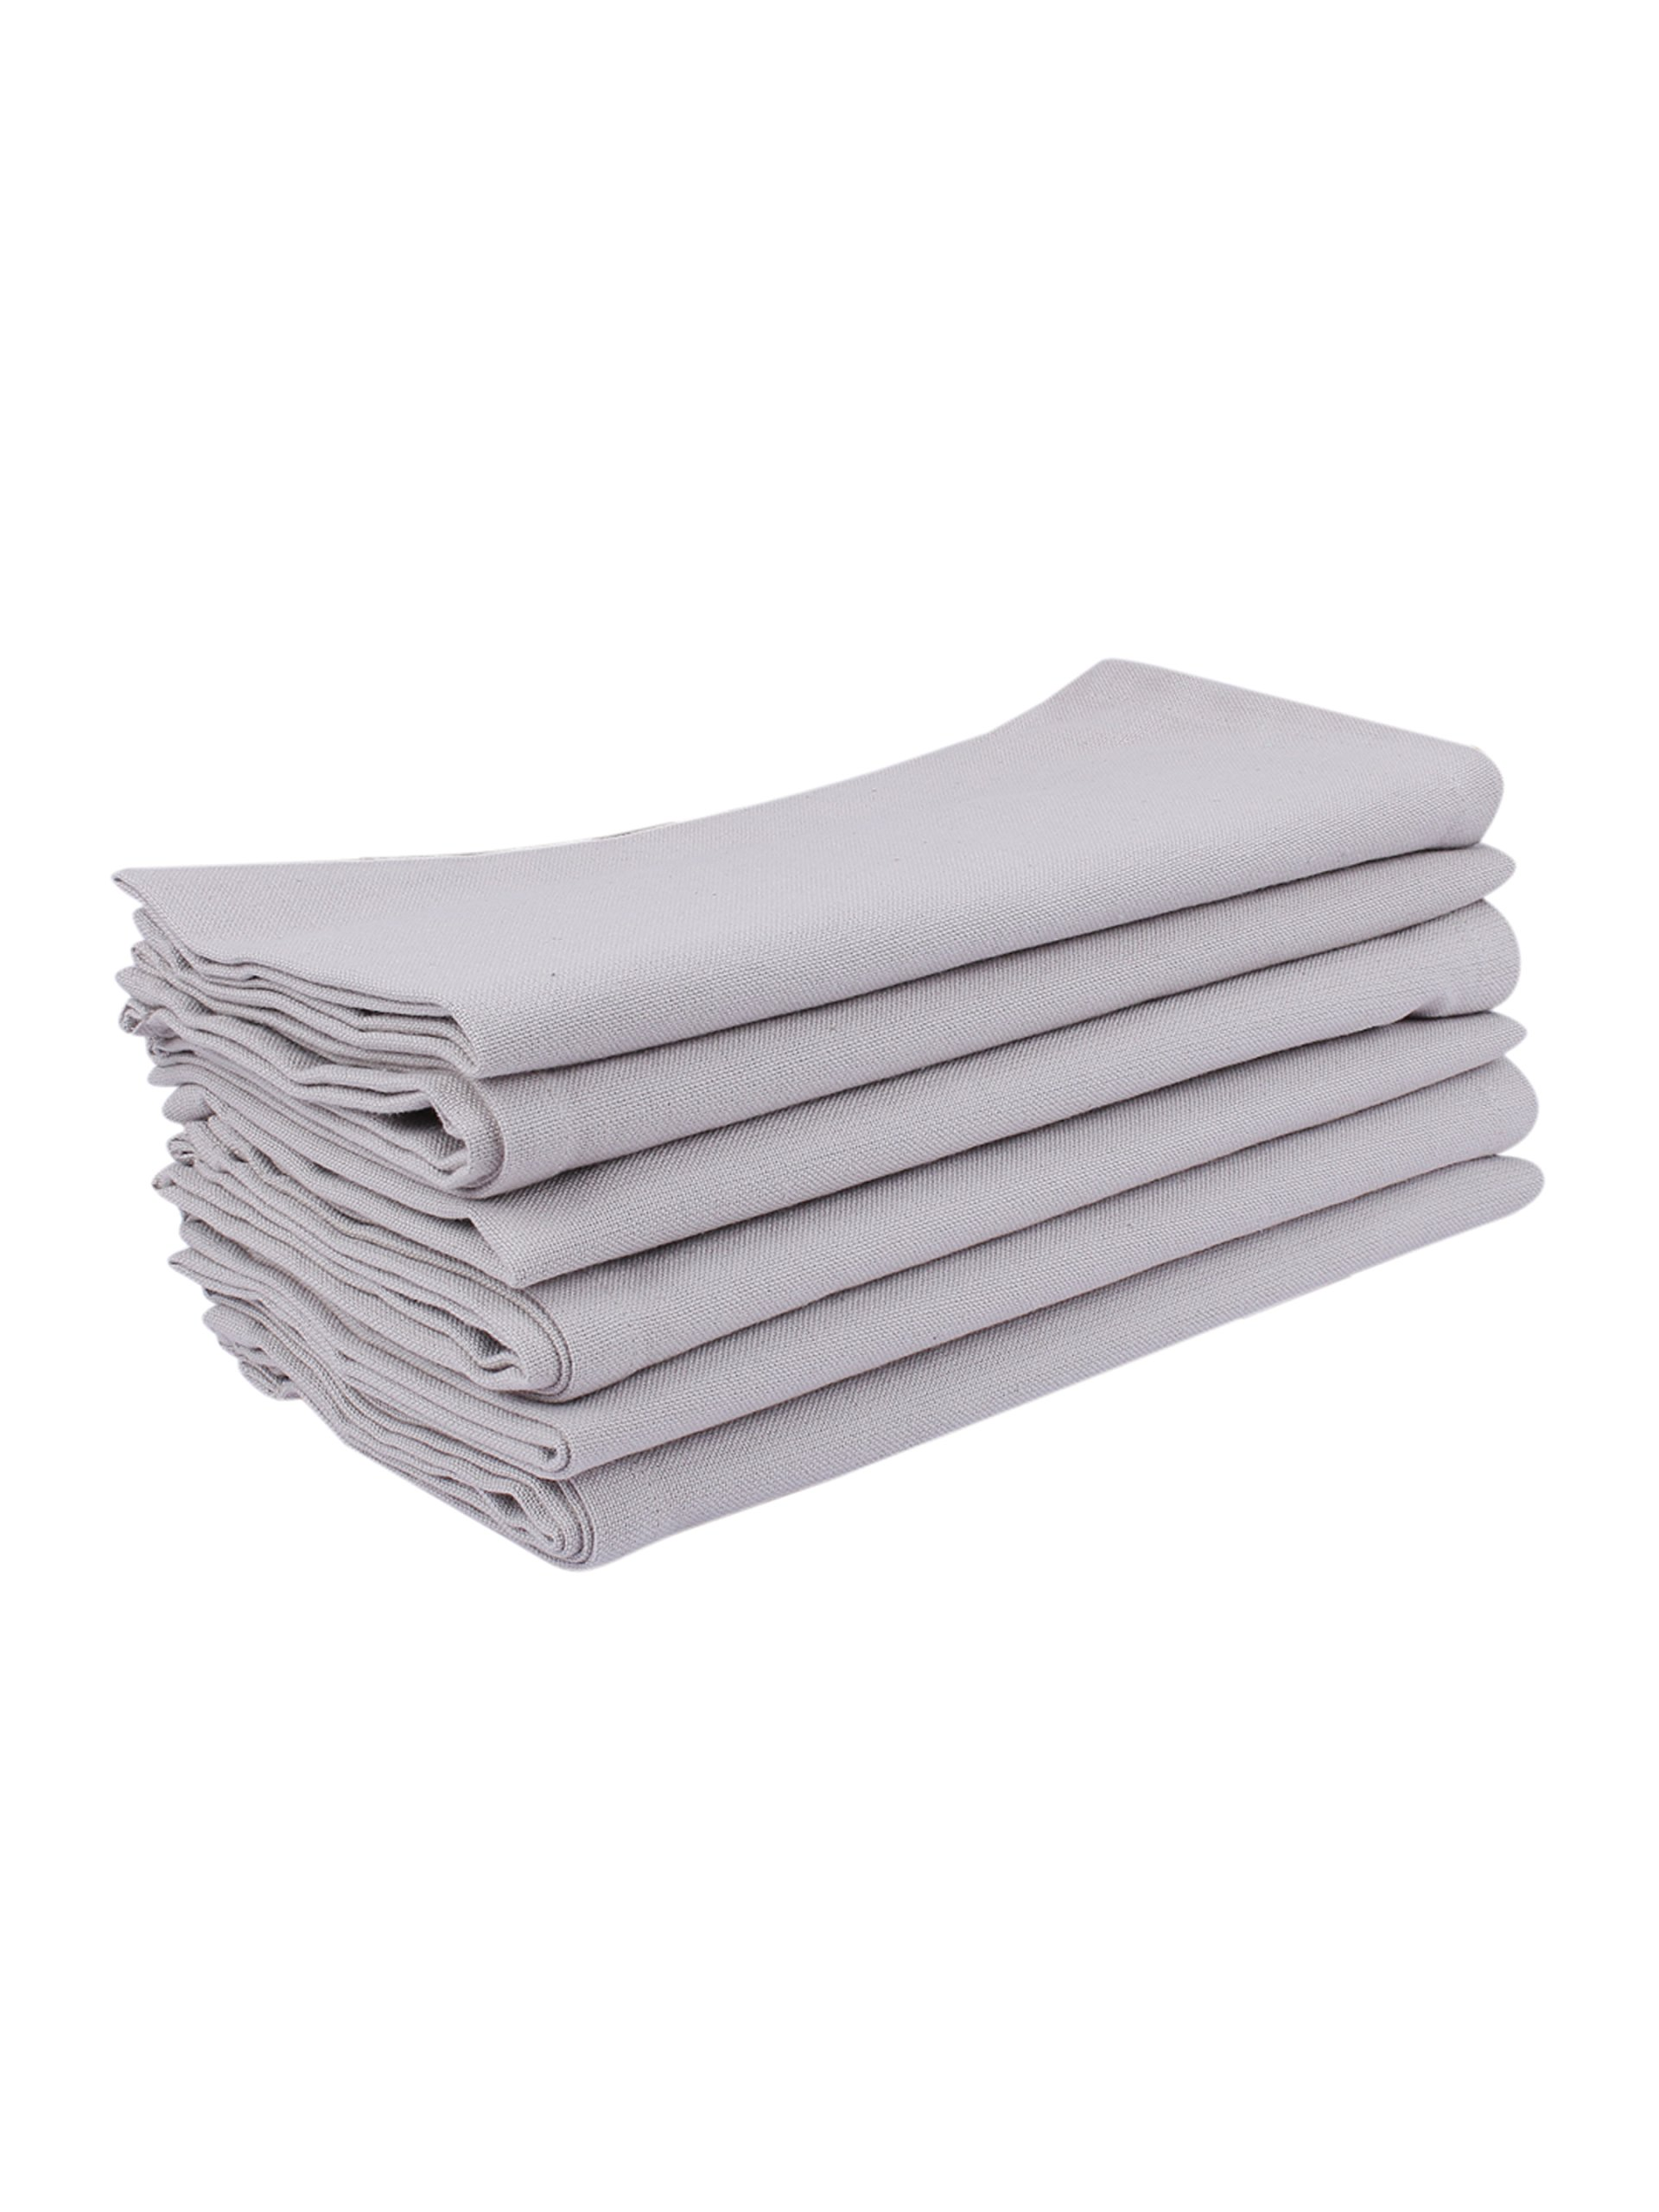 Villa Tranquil Napkins, set of 6, 100% cotton, Eco-Friendly and safe, beige color, for all homes, size 20''x20''.